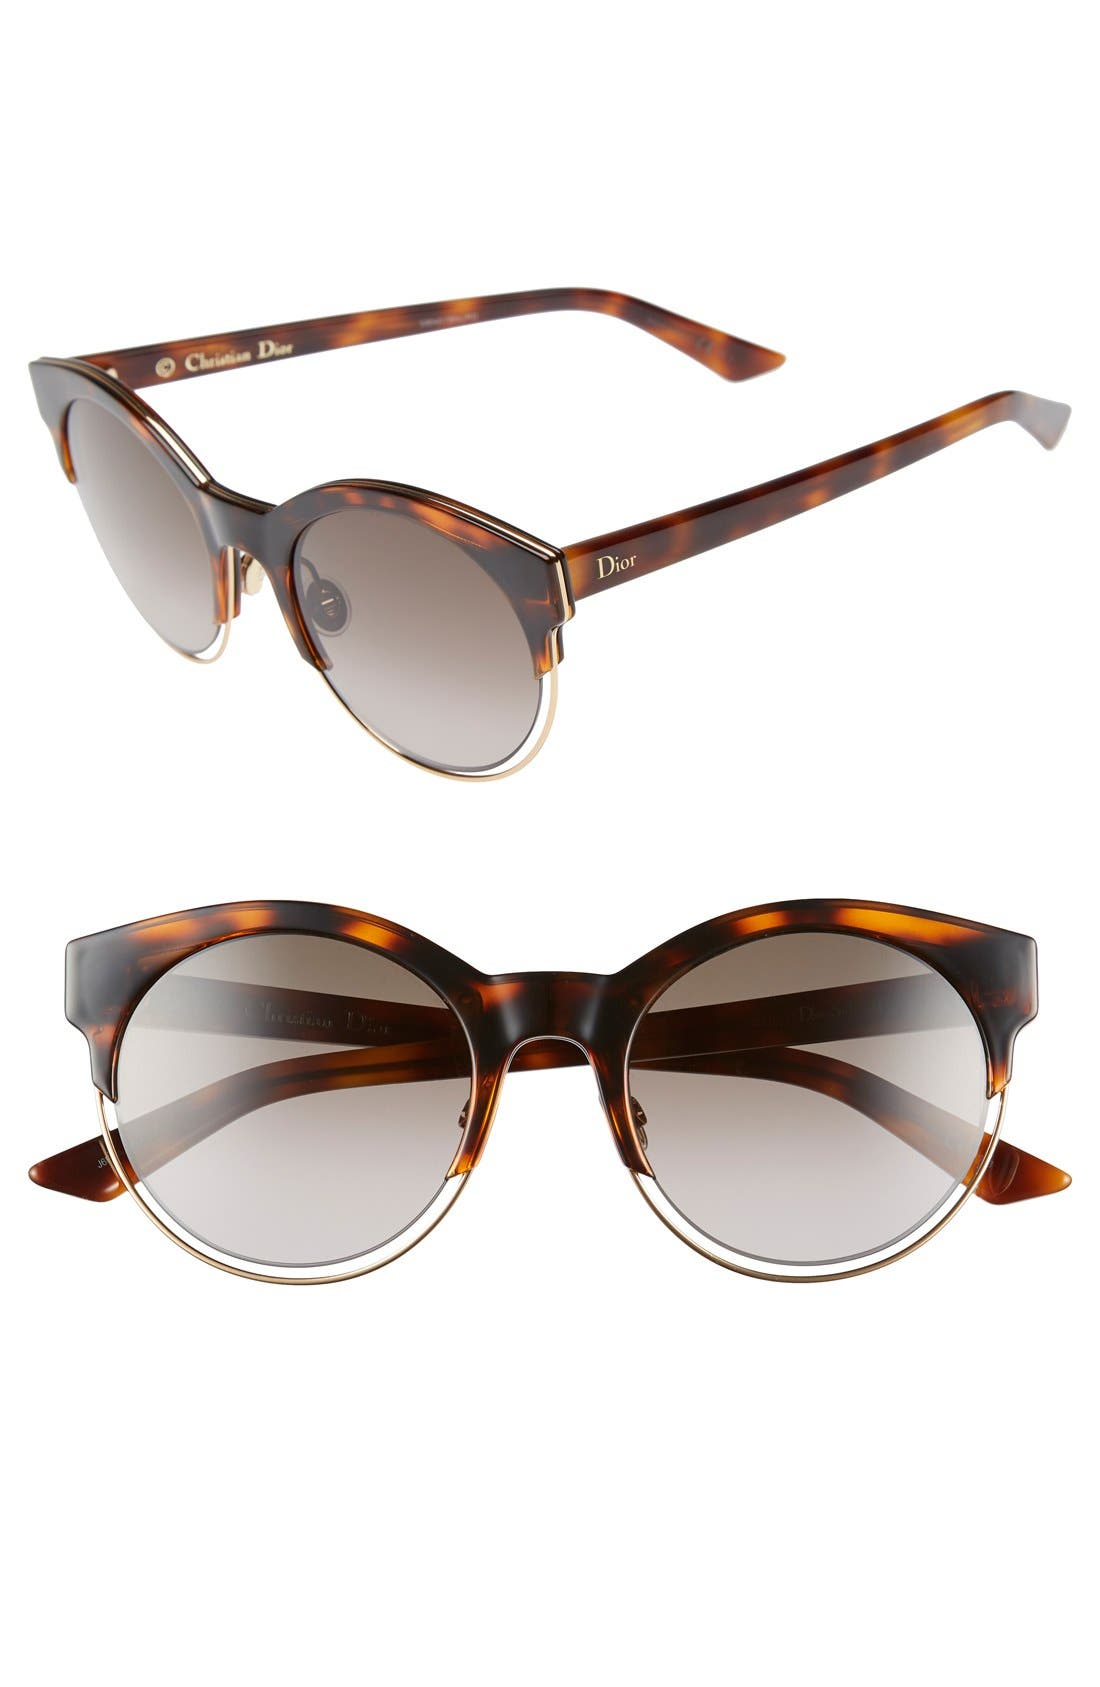 Siderall 1 53mm Round Sunglasses,                             Main thumbnail 5, color,